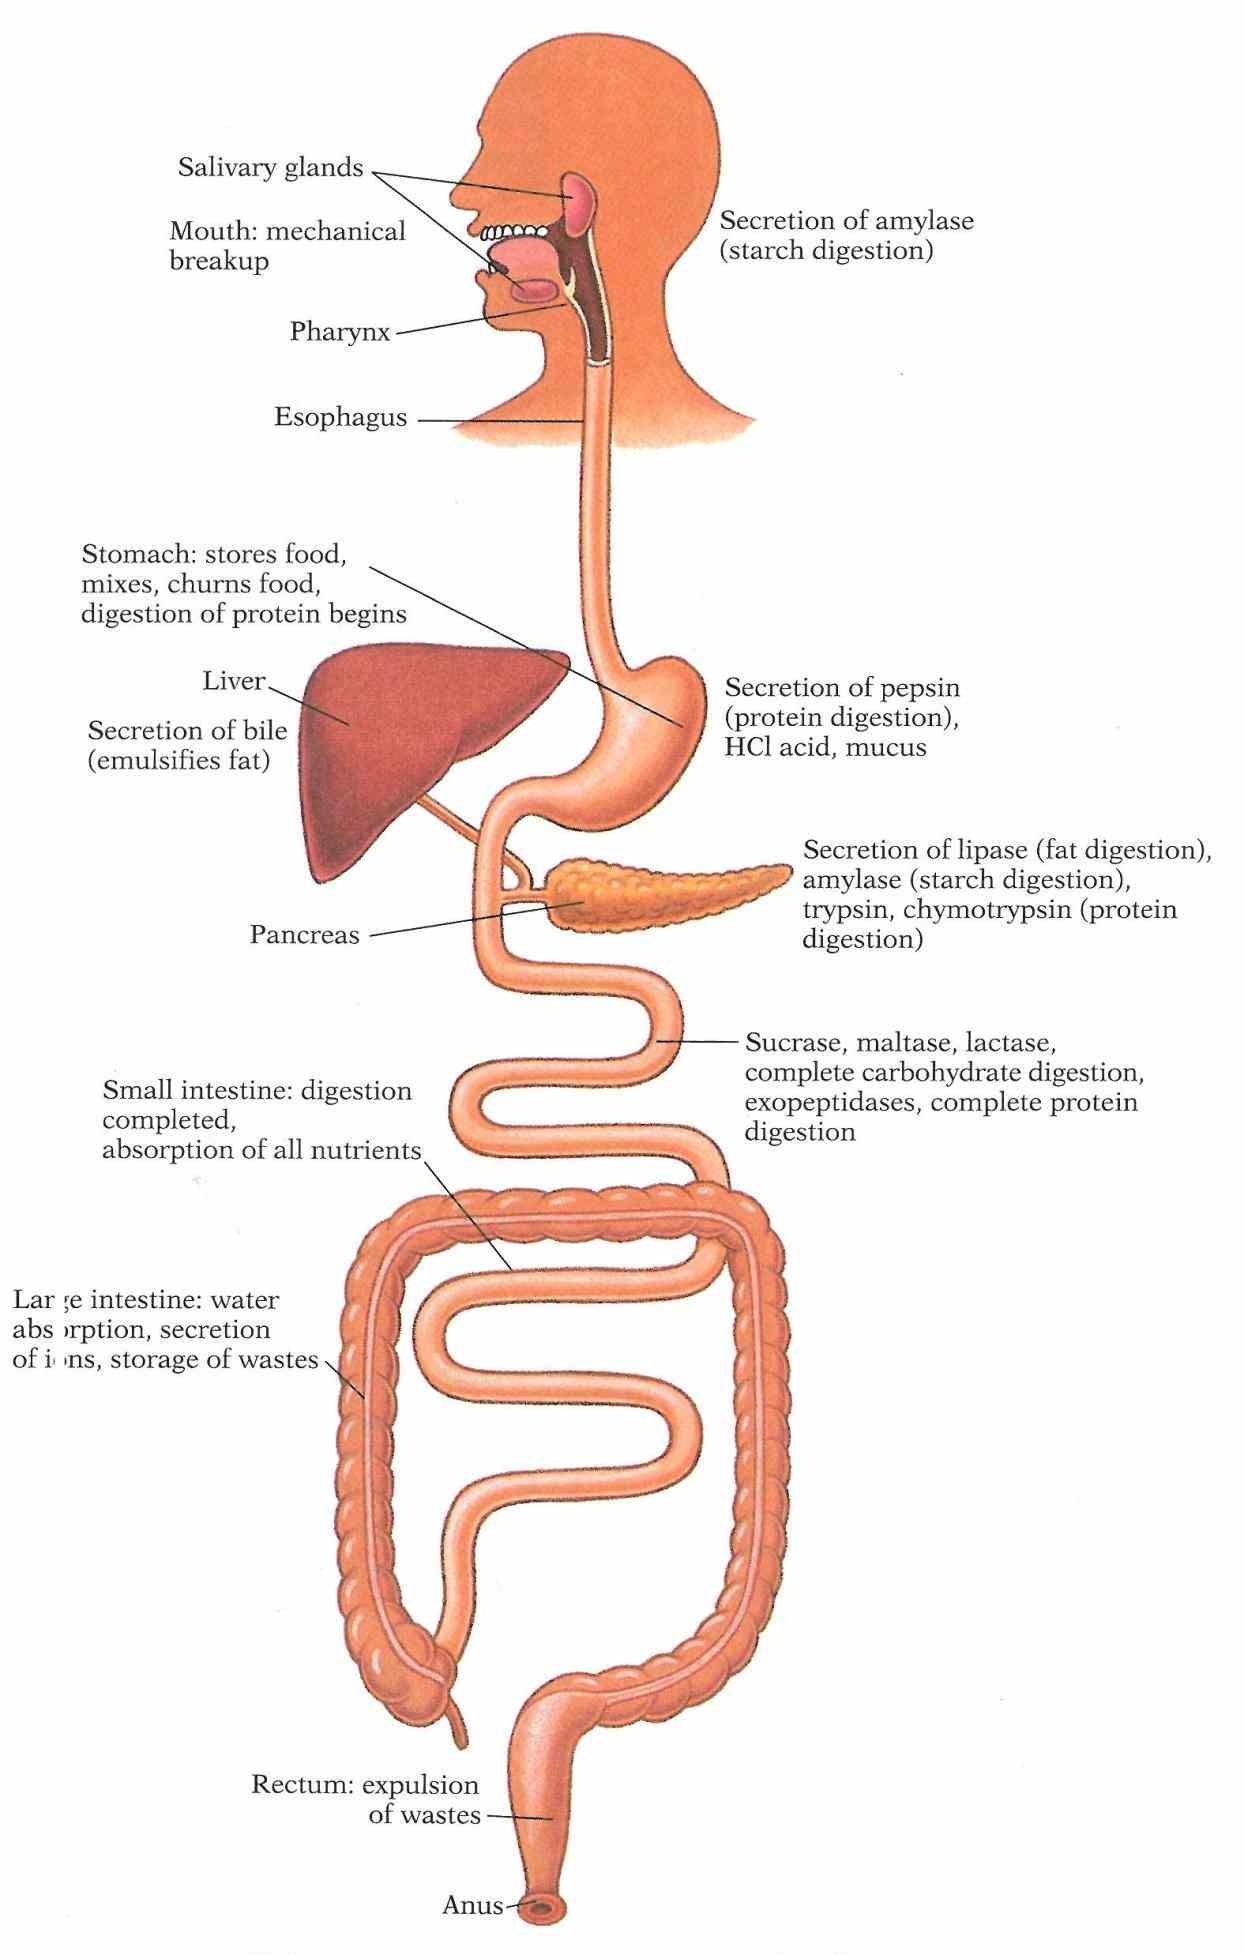 System Human Body human digestive system pictures and royaltyfree images from istock woman holding model of intestines in front